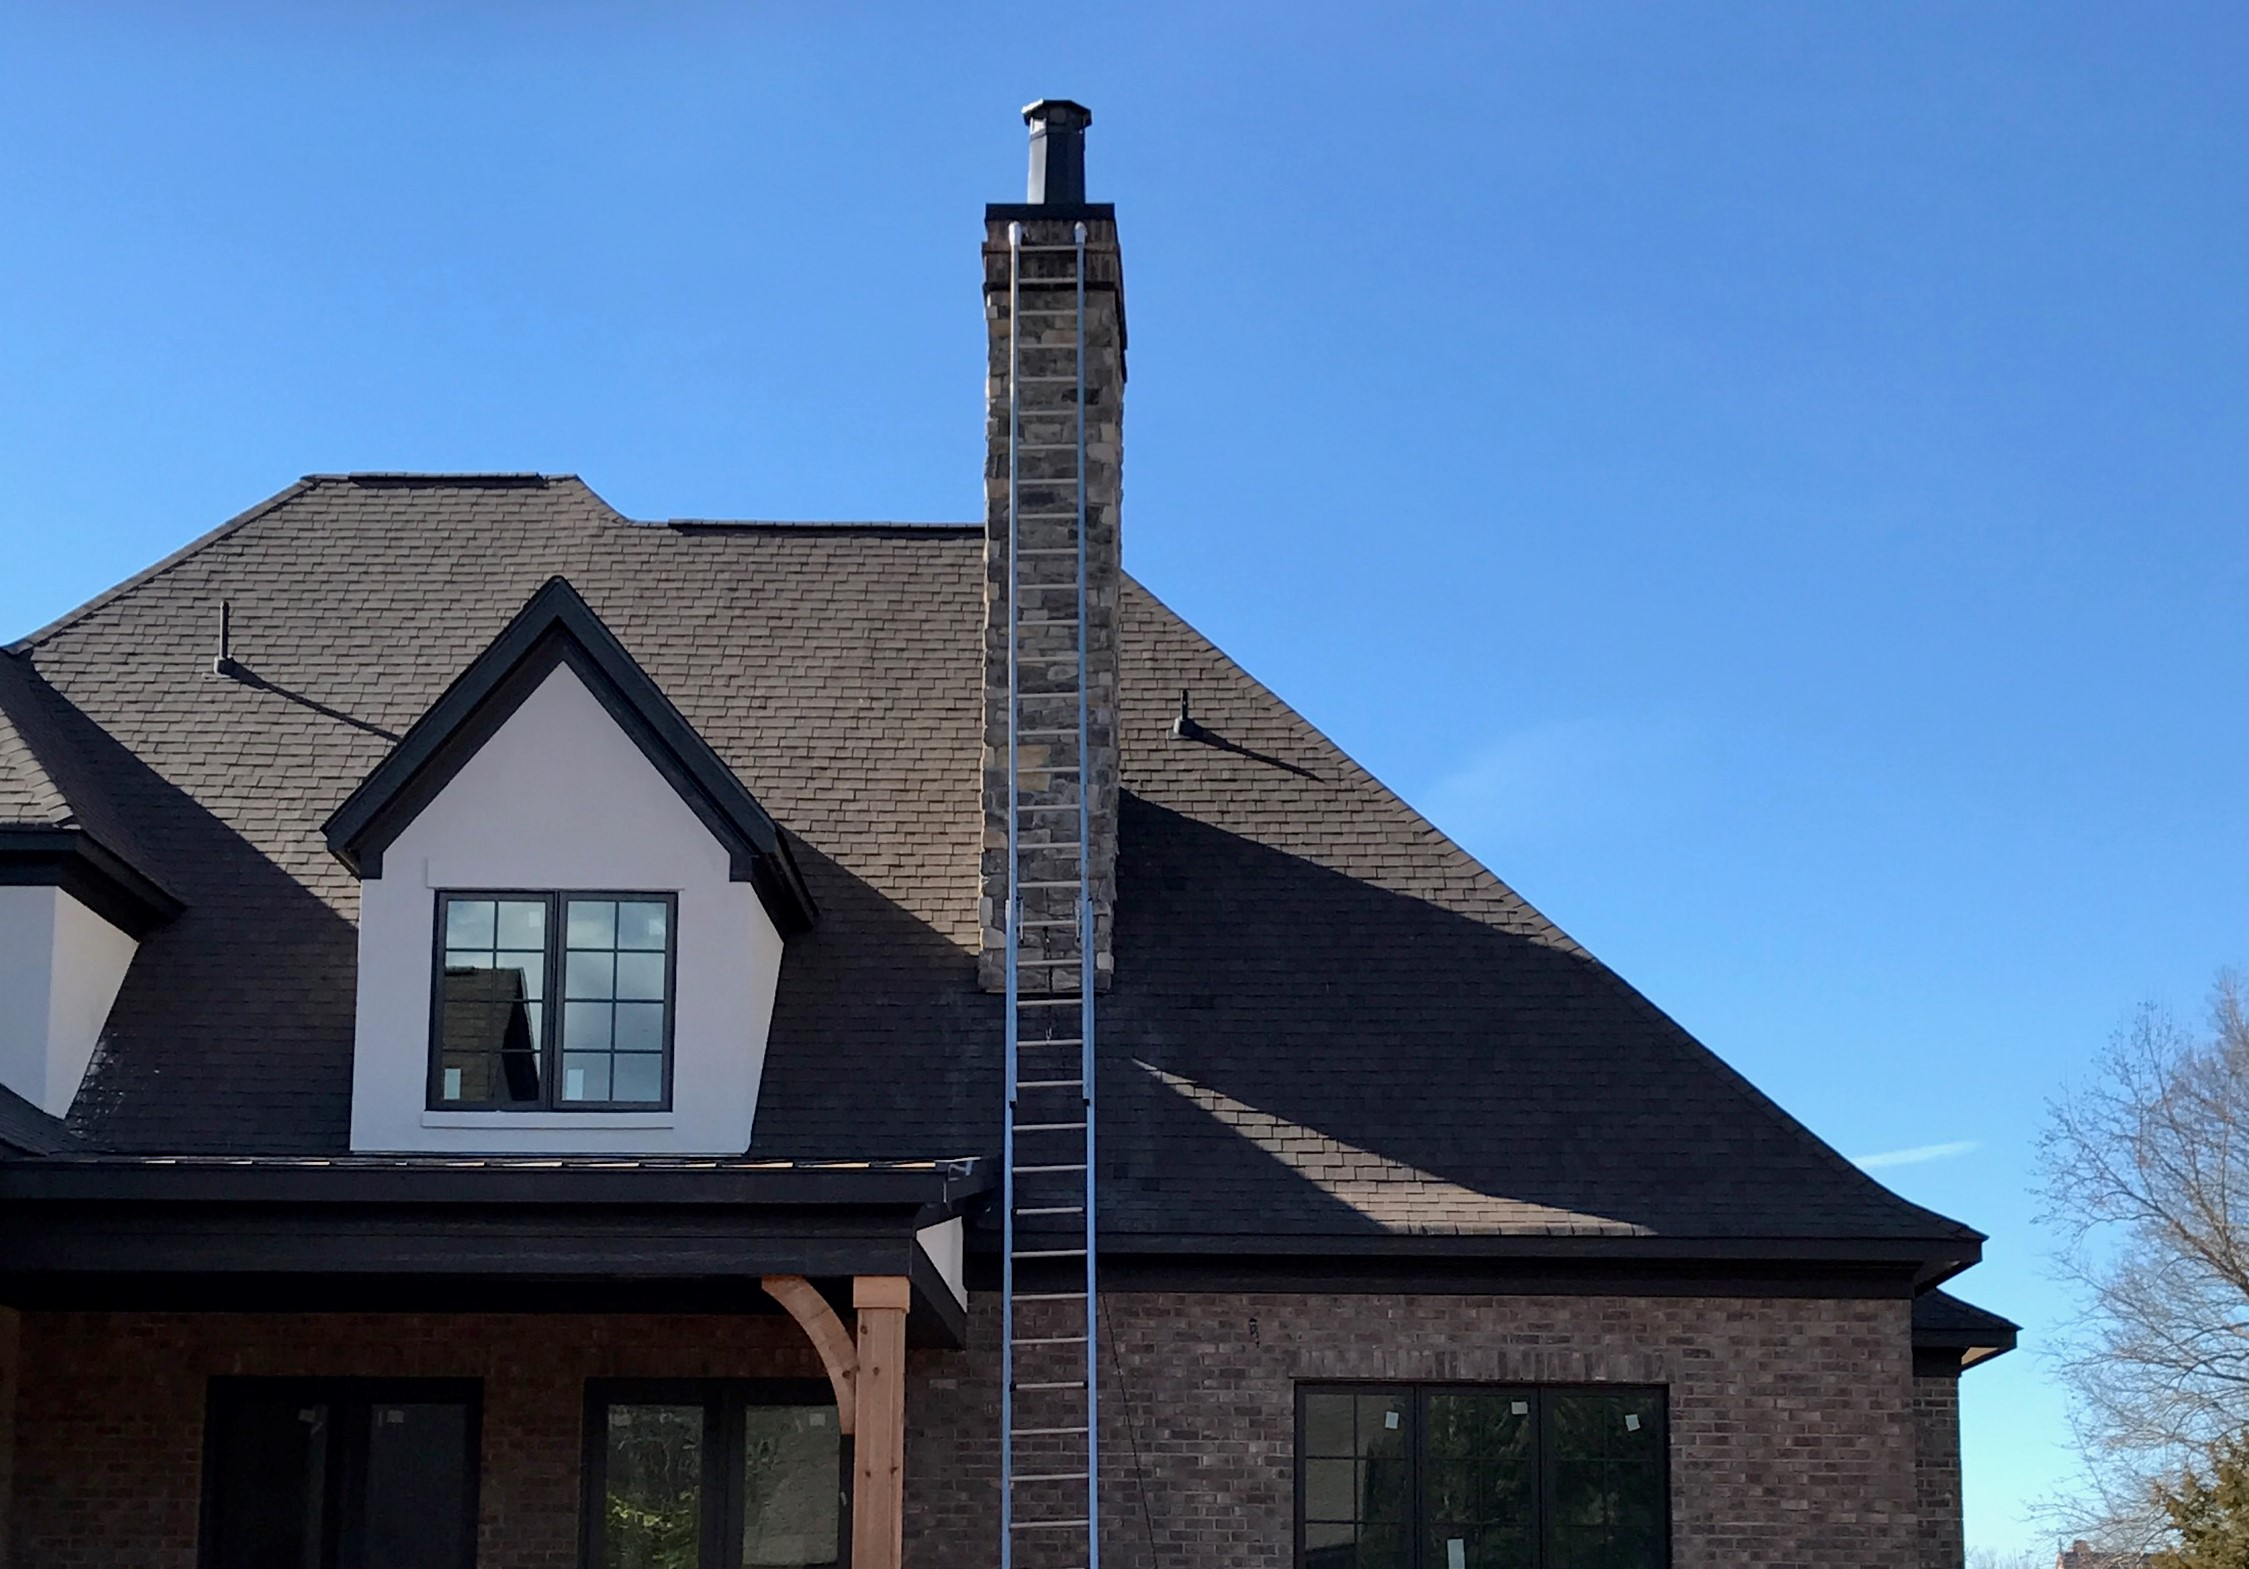 Shingles and chimney pot